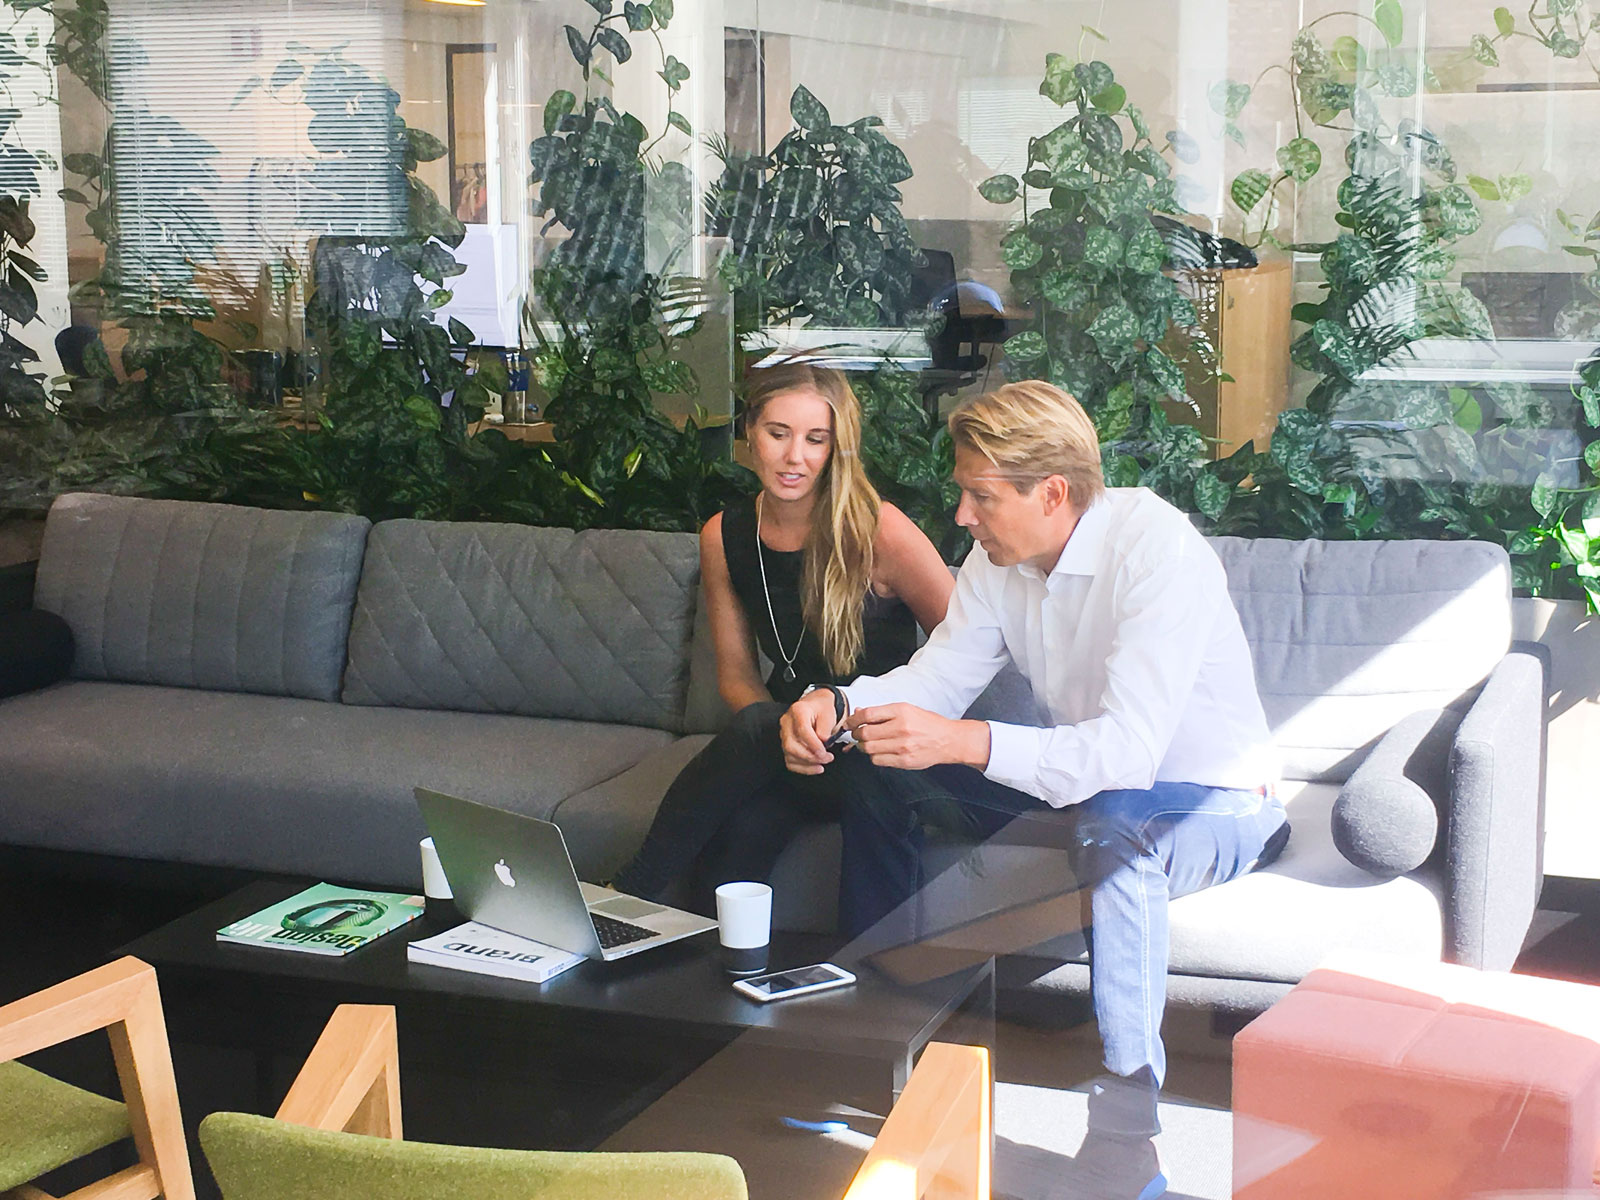 CEO and Co-founder of Gture Rolv-Erik Spilling having a meeting with Gture employee